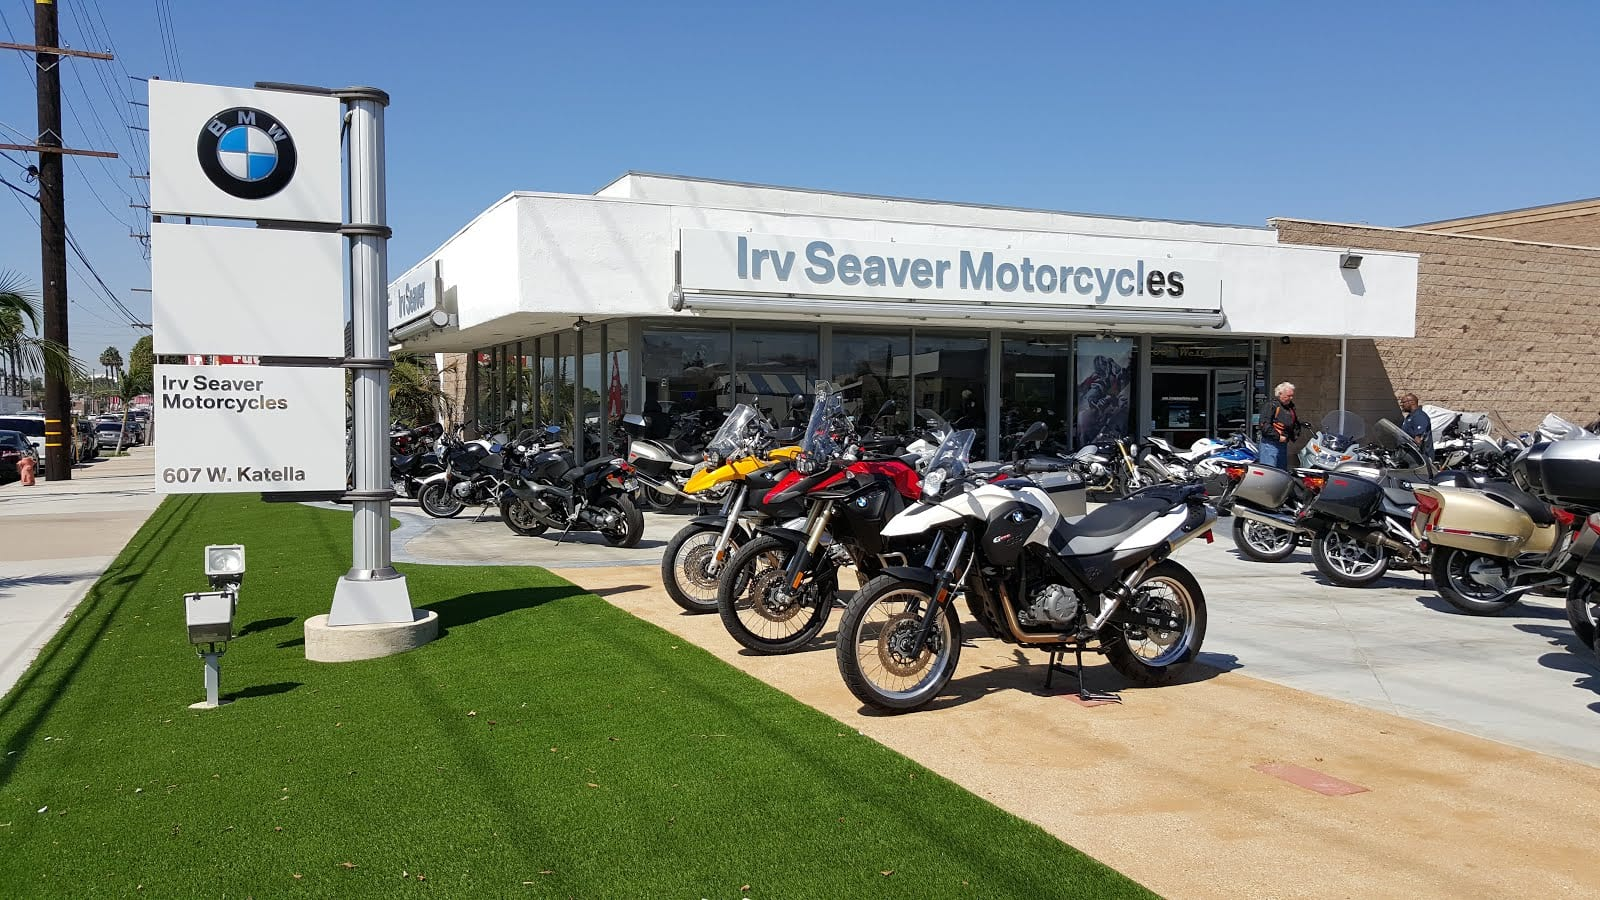 Brazen Heist of Two BMW bikes from Irv Seaver